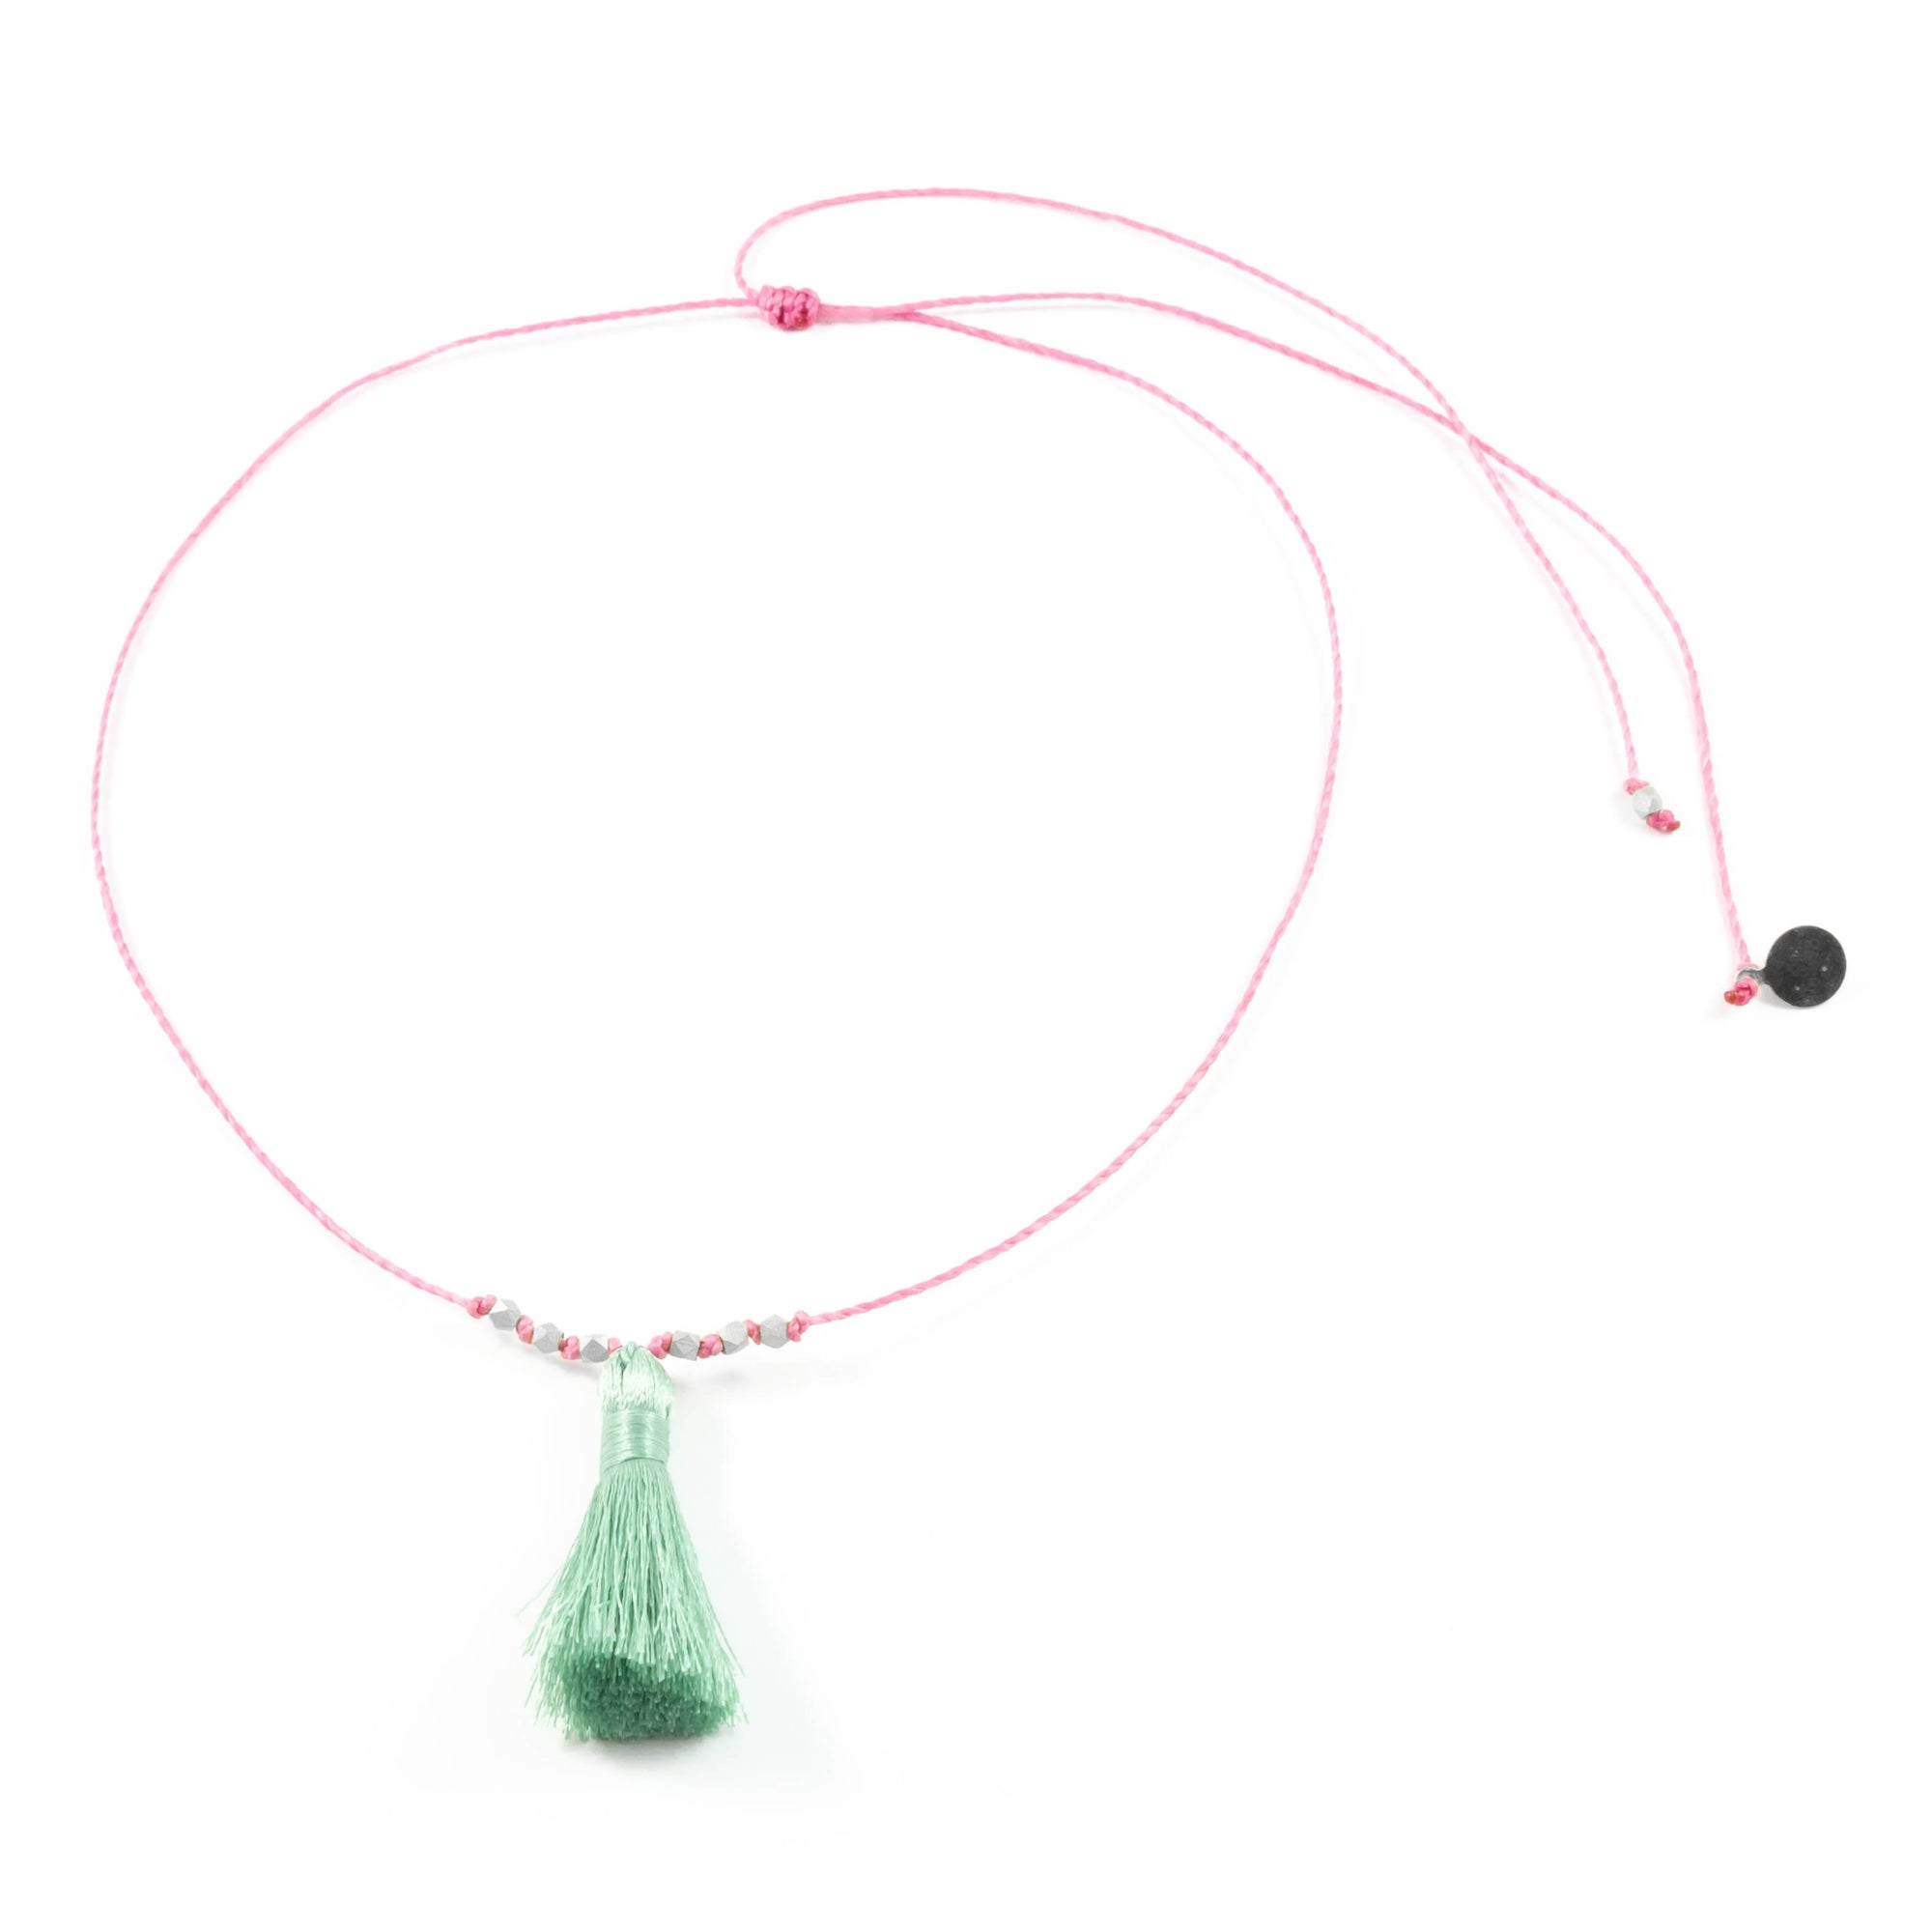 Rose w/ Cucumber Tassel On a String Necklace in Silver